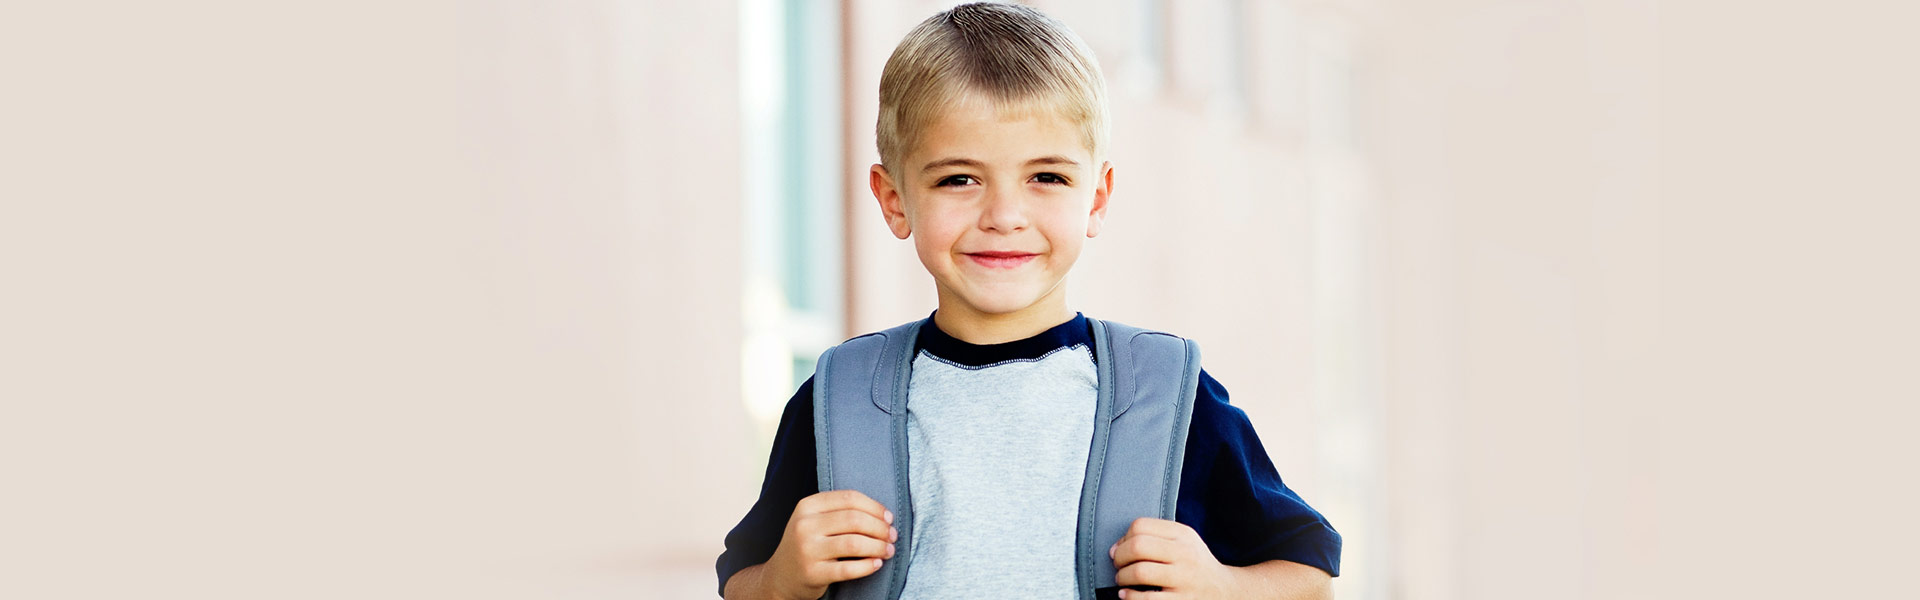 How To Prep Your Child For The New School Year